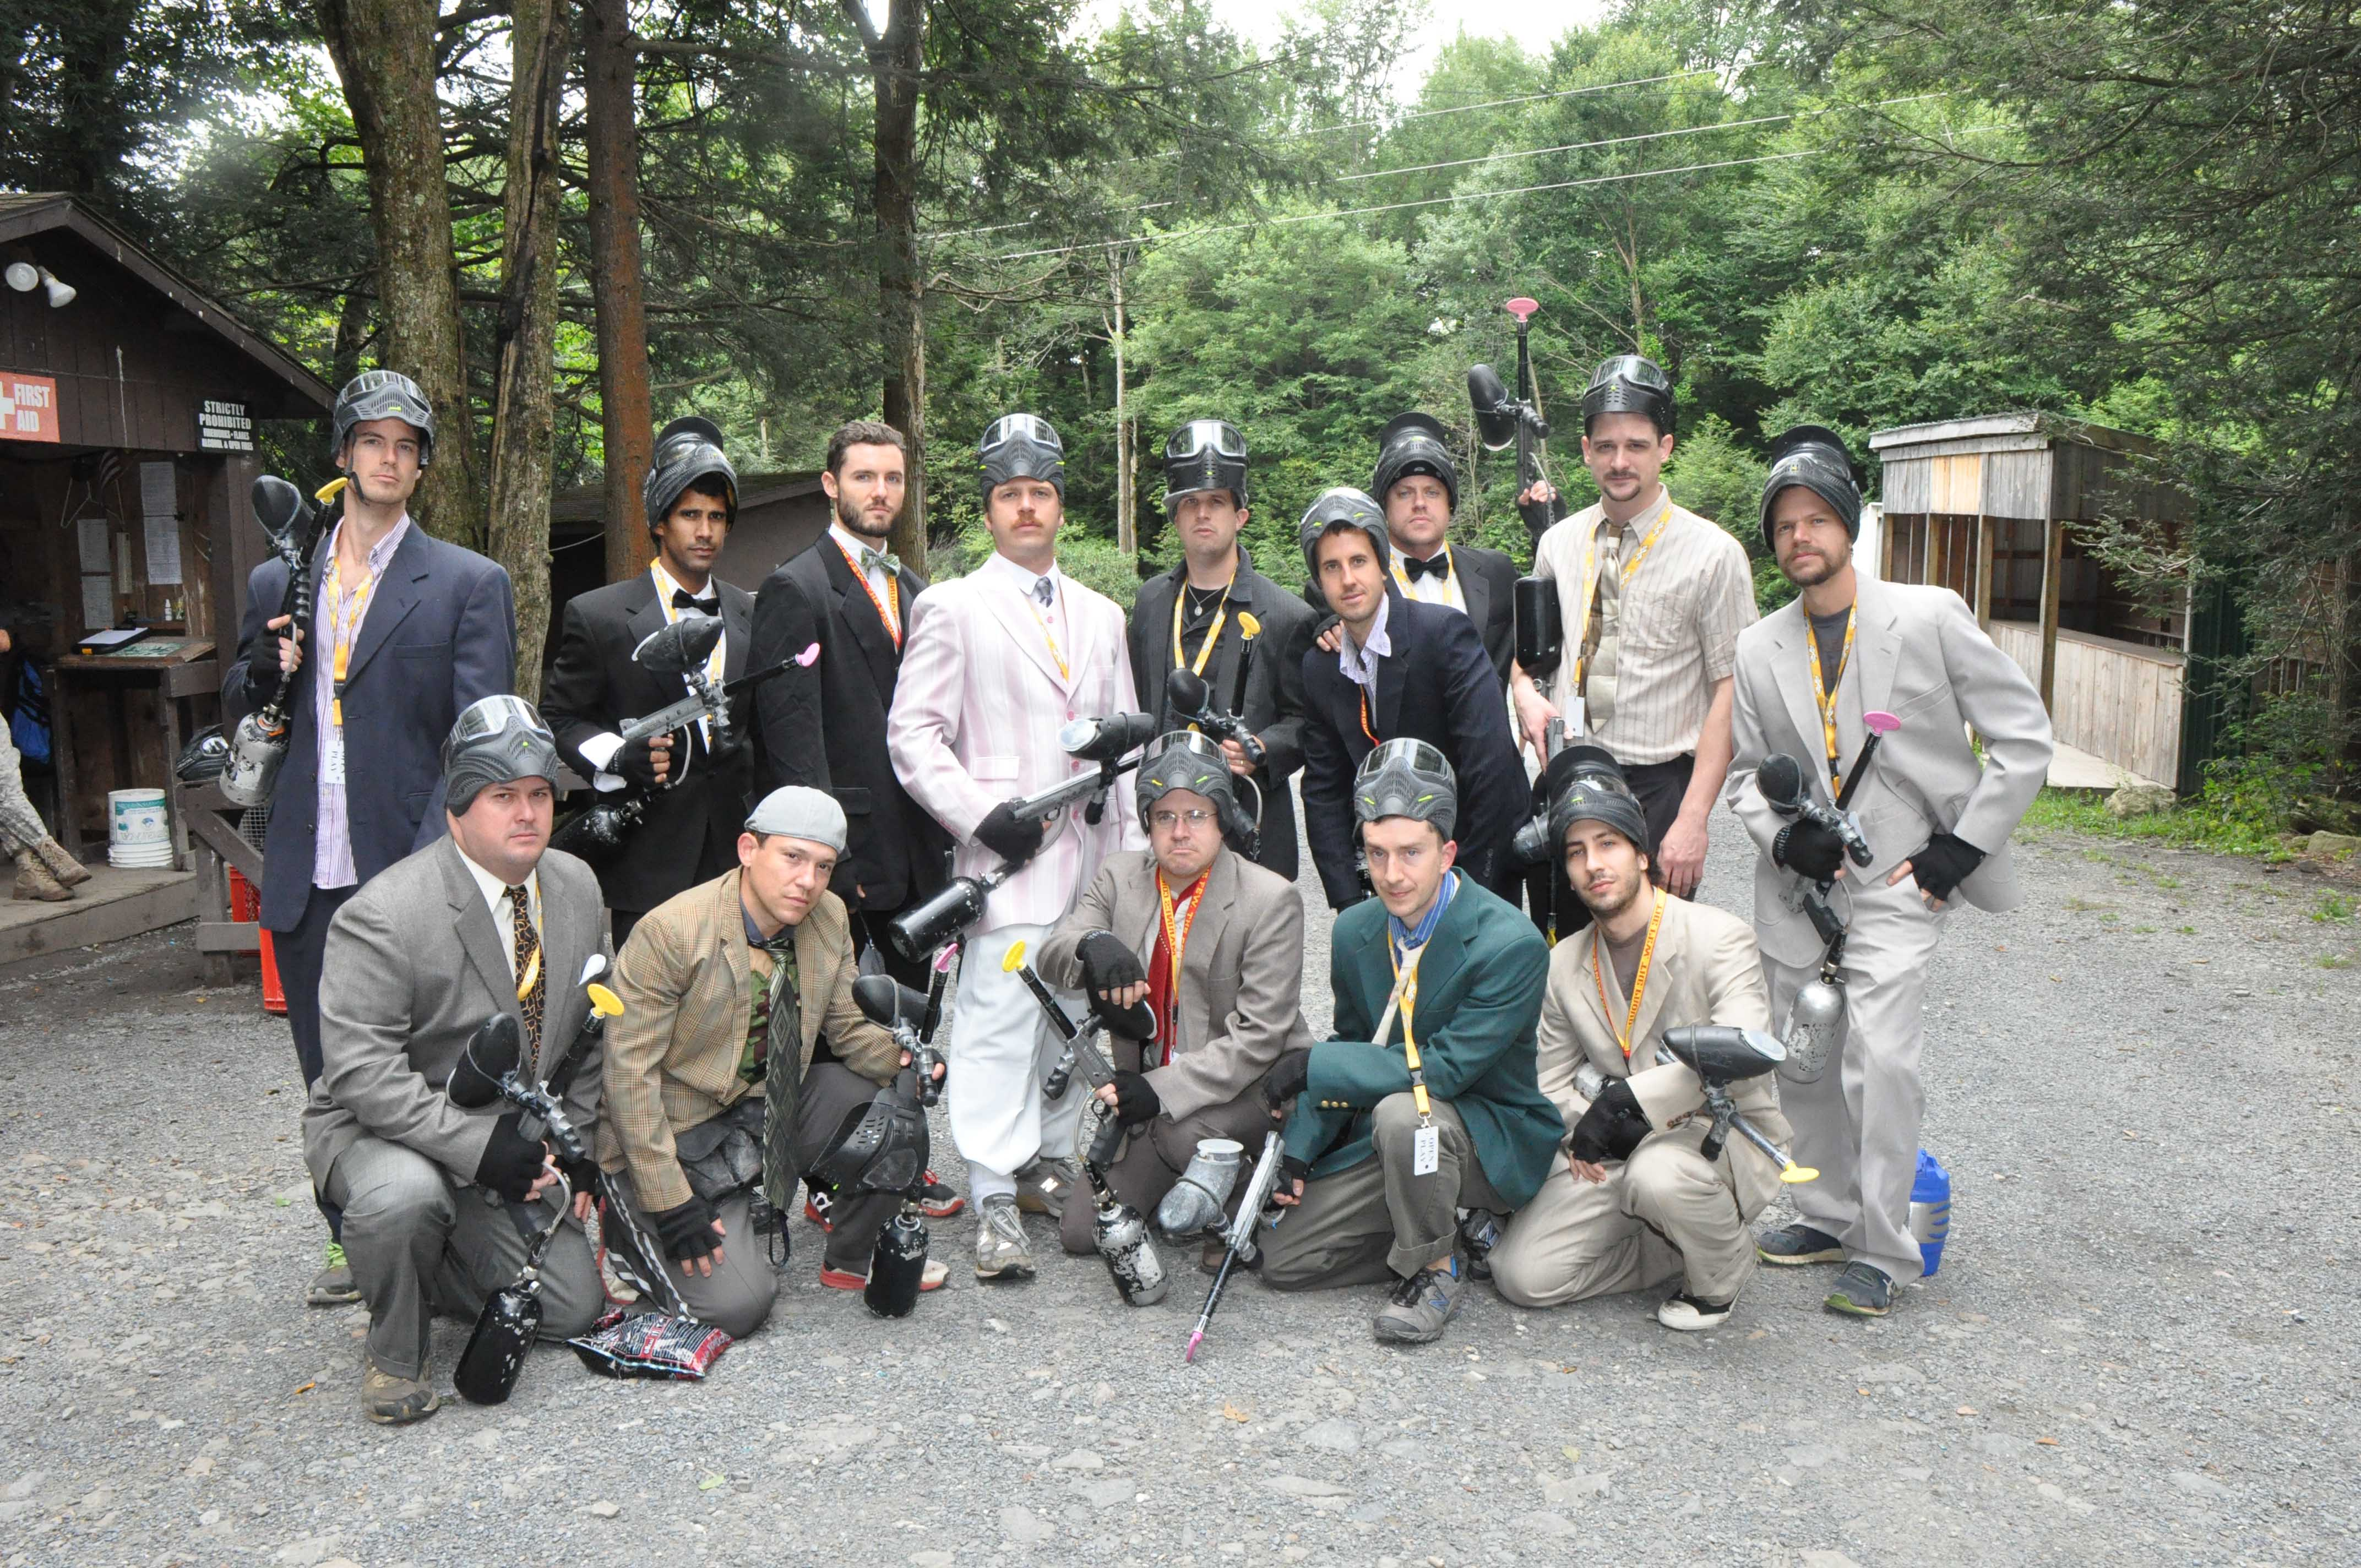 bachelor party ideas | bachelor party paintball games | bachelor parties